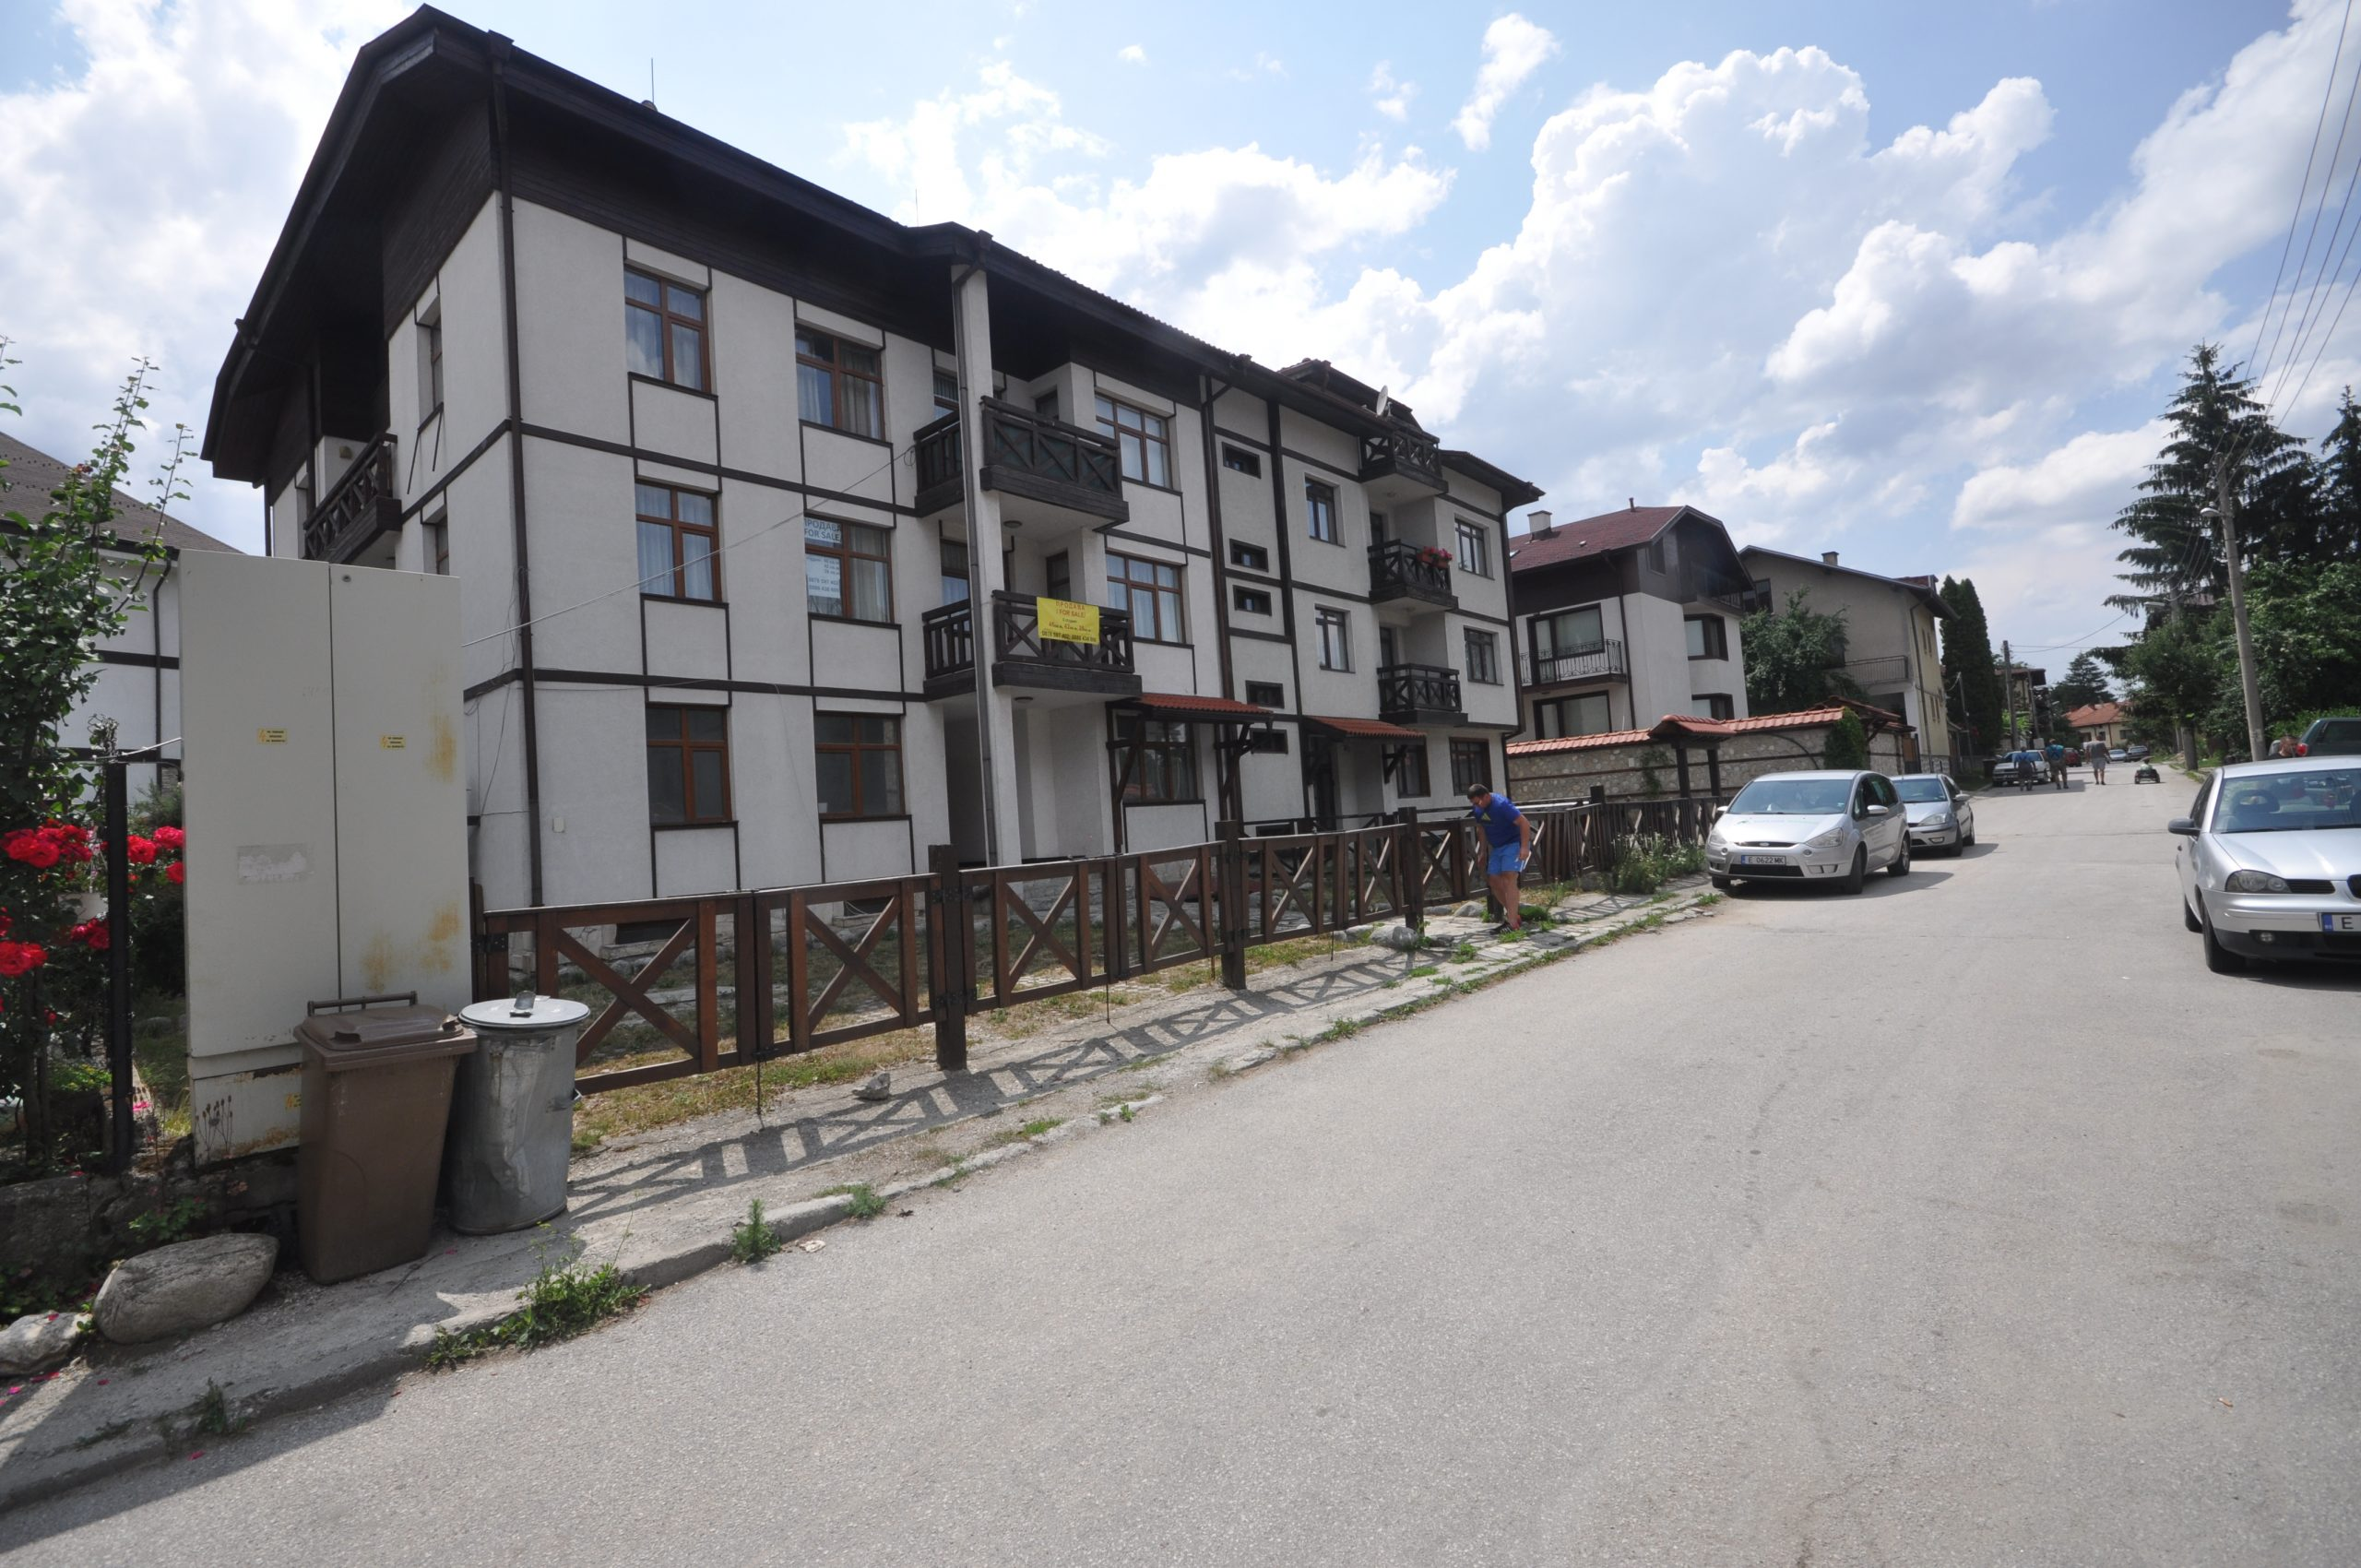 1 Bedroom Duplex For Sale White House Complex Bansko